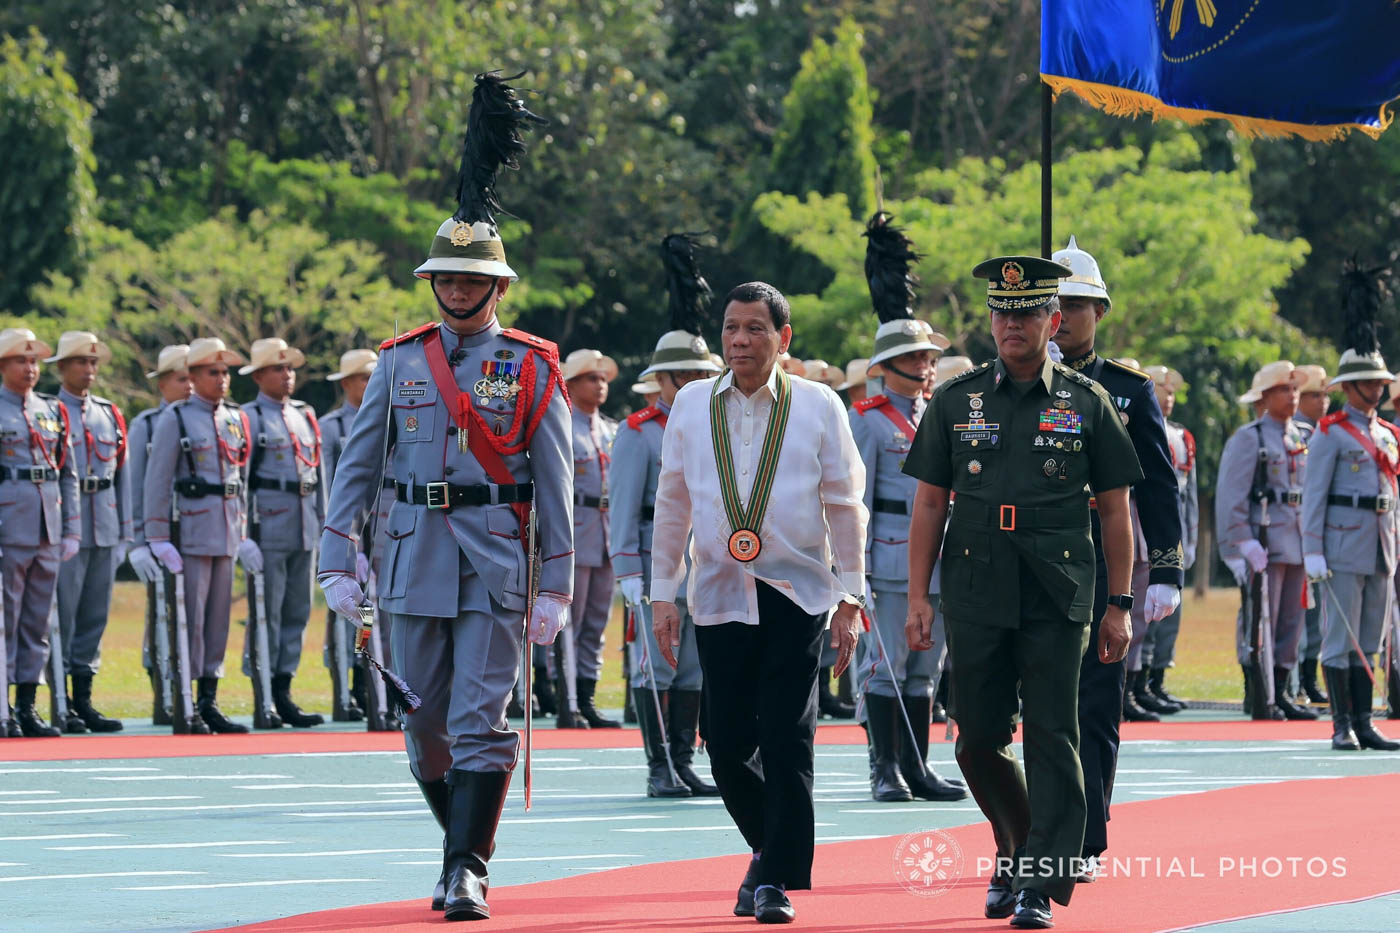 HONORS. President Rodrigo Duterte is accorded foyer honors upon his arrival at the Philippine Army headquarters for the 121st Founding Anniversary of the Philippine Army (PA) on March 20, 2018.